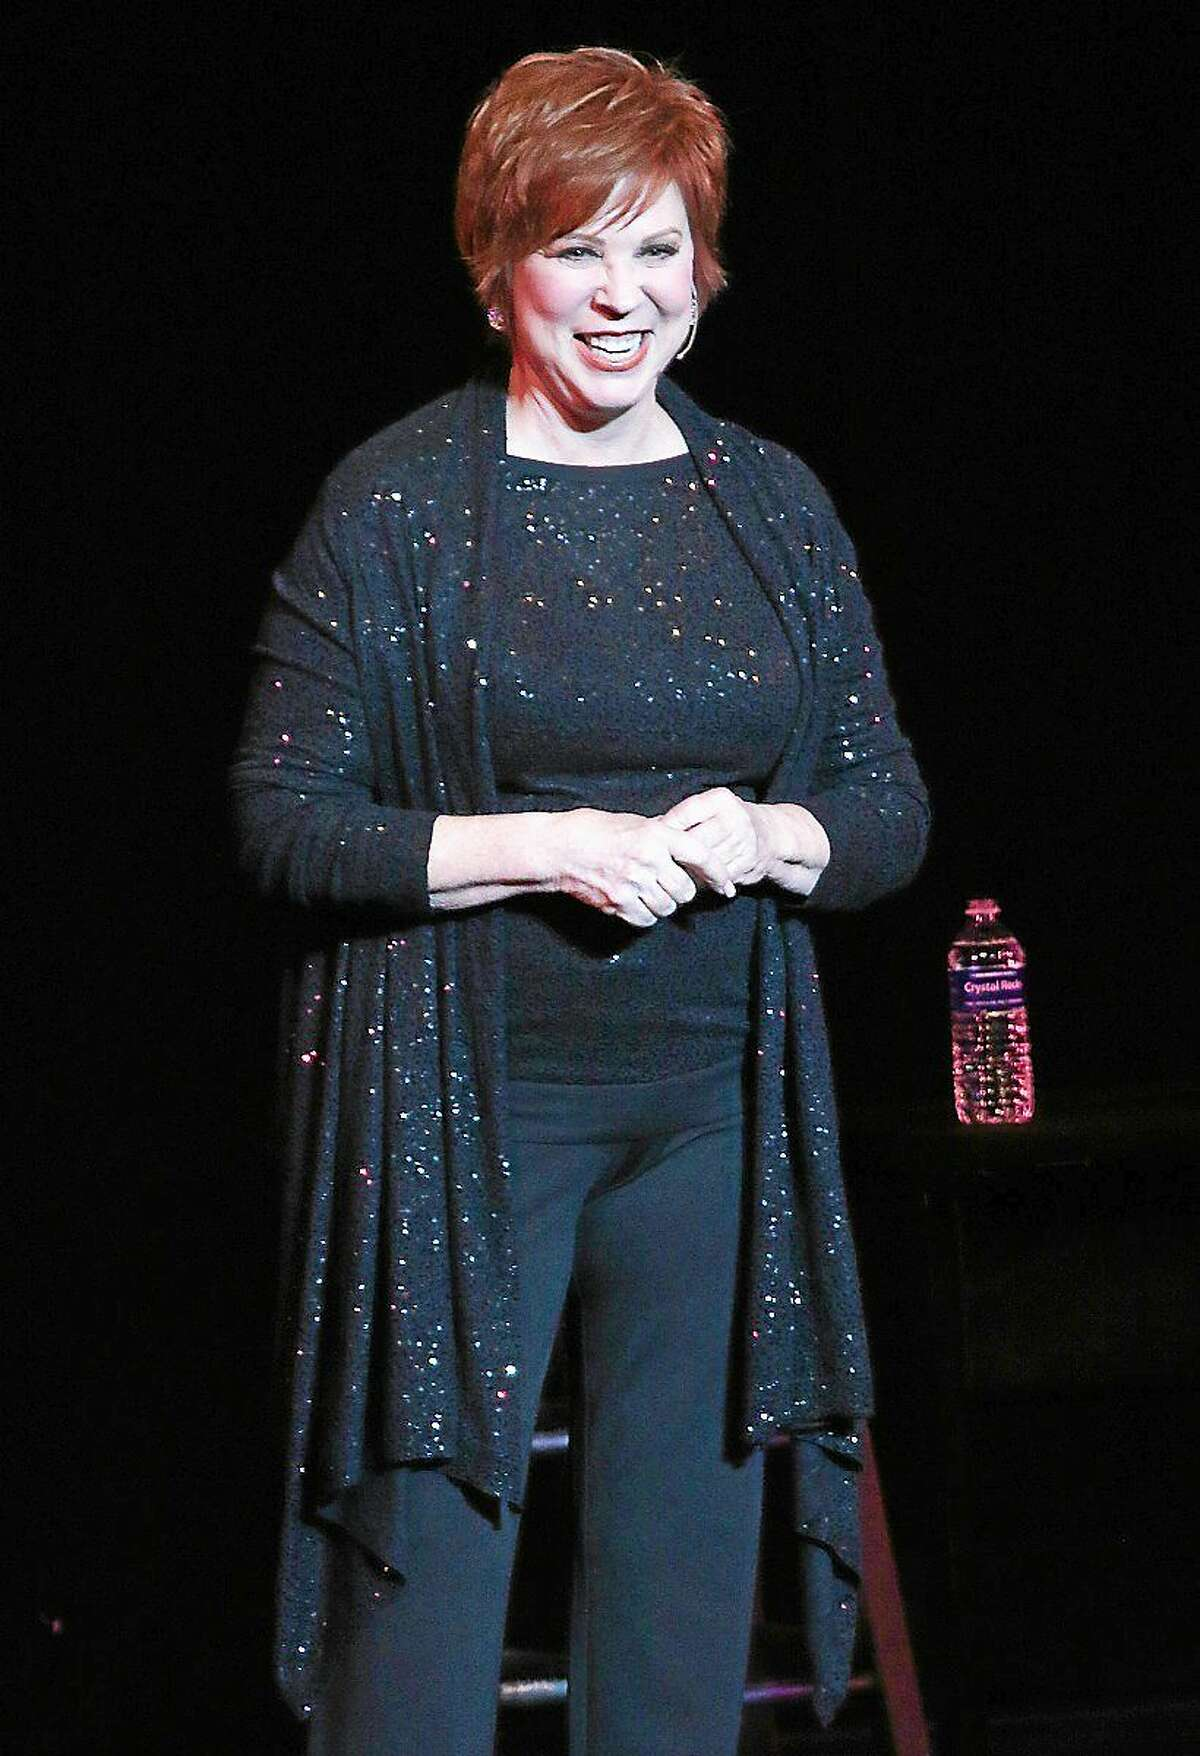 Photo by John Atashian Comedian, actress and singer Vicki Lawrence, best known for the many characters she originated on The Carol Burnett Show, is shown performing on stage at the Palace Theater in Waterbury on April 18. Her ìtwo-womanî show featured Thelma Harper, who was the supporting character for Burnettís Eunice Higgins and became a televised comedy show for a number of years. Lawrence has earned multiple Emmy Award nominations, winning one in 1976. She is also a multiple Golden Globe nominee, all for The Carol Burnett Show.